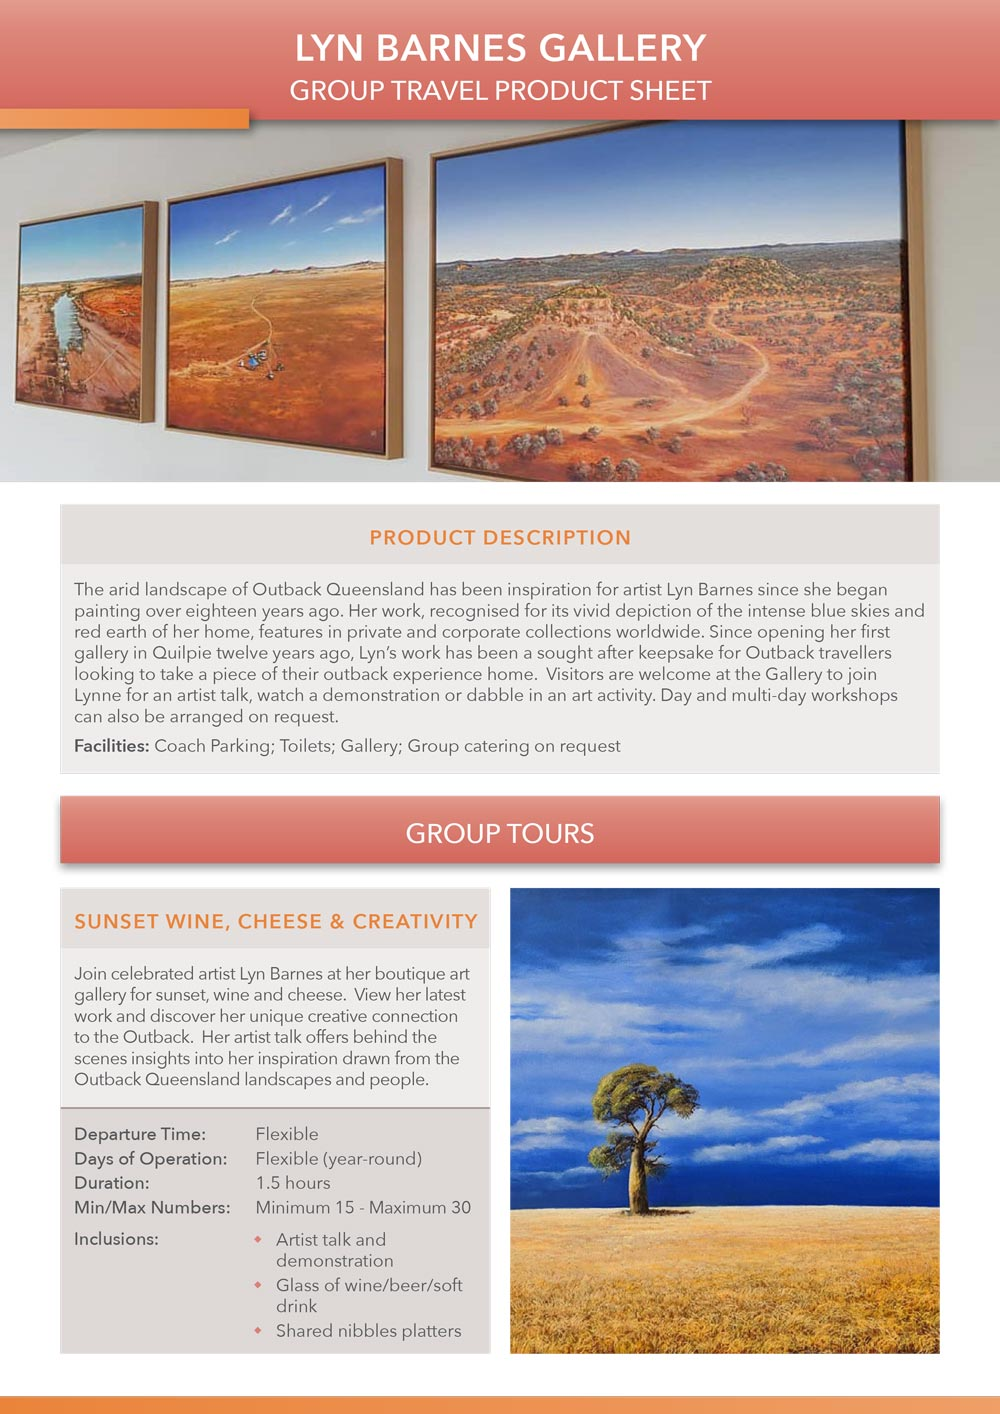 Lyn Barnes Gallery product sheet preview